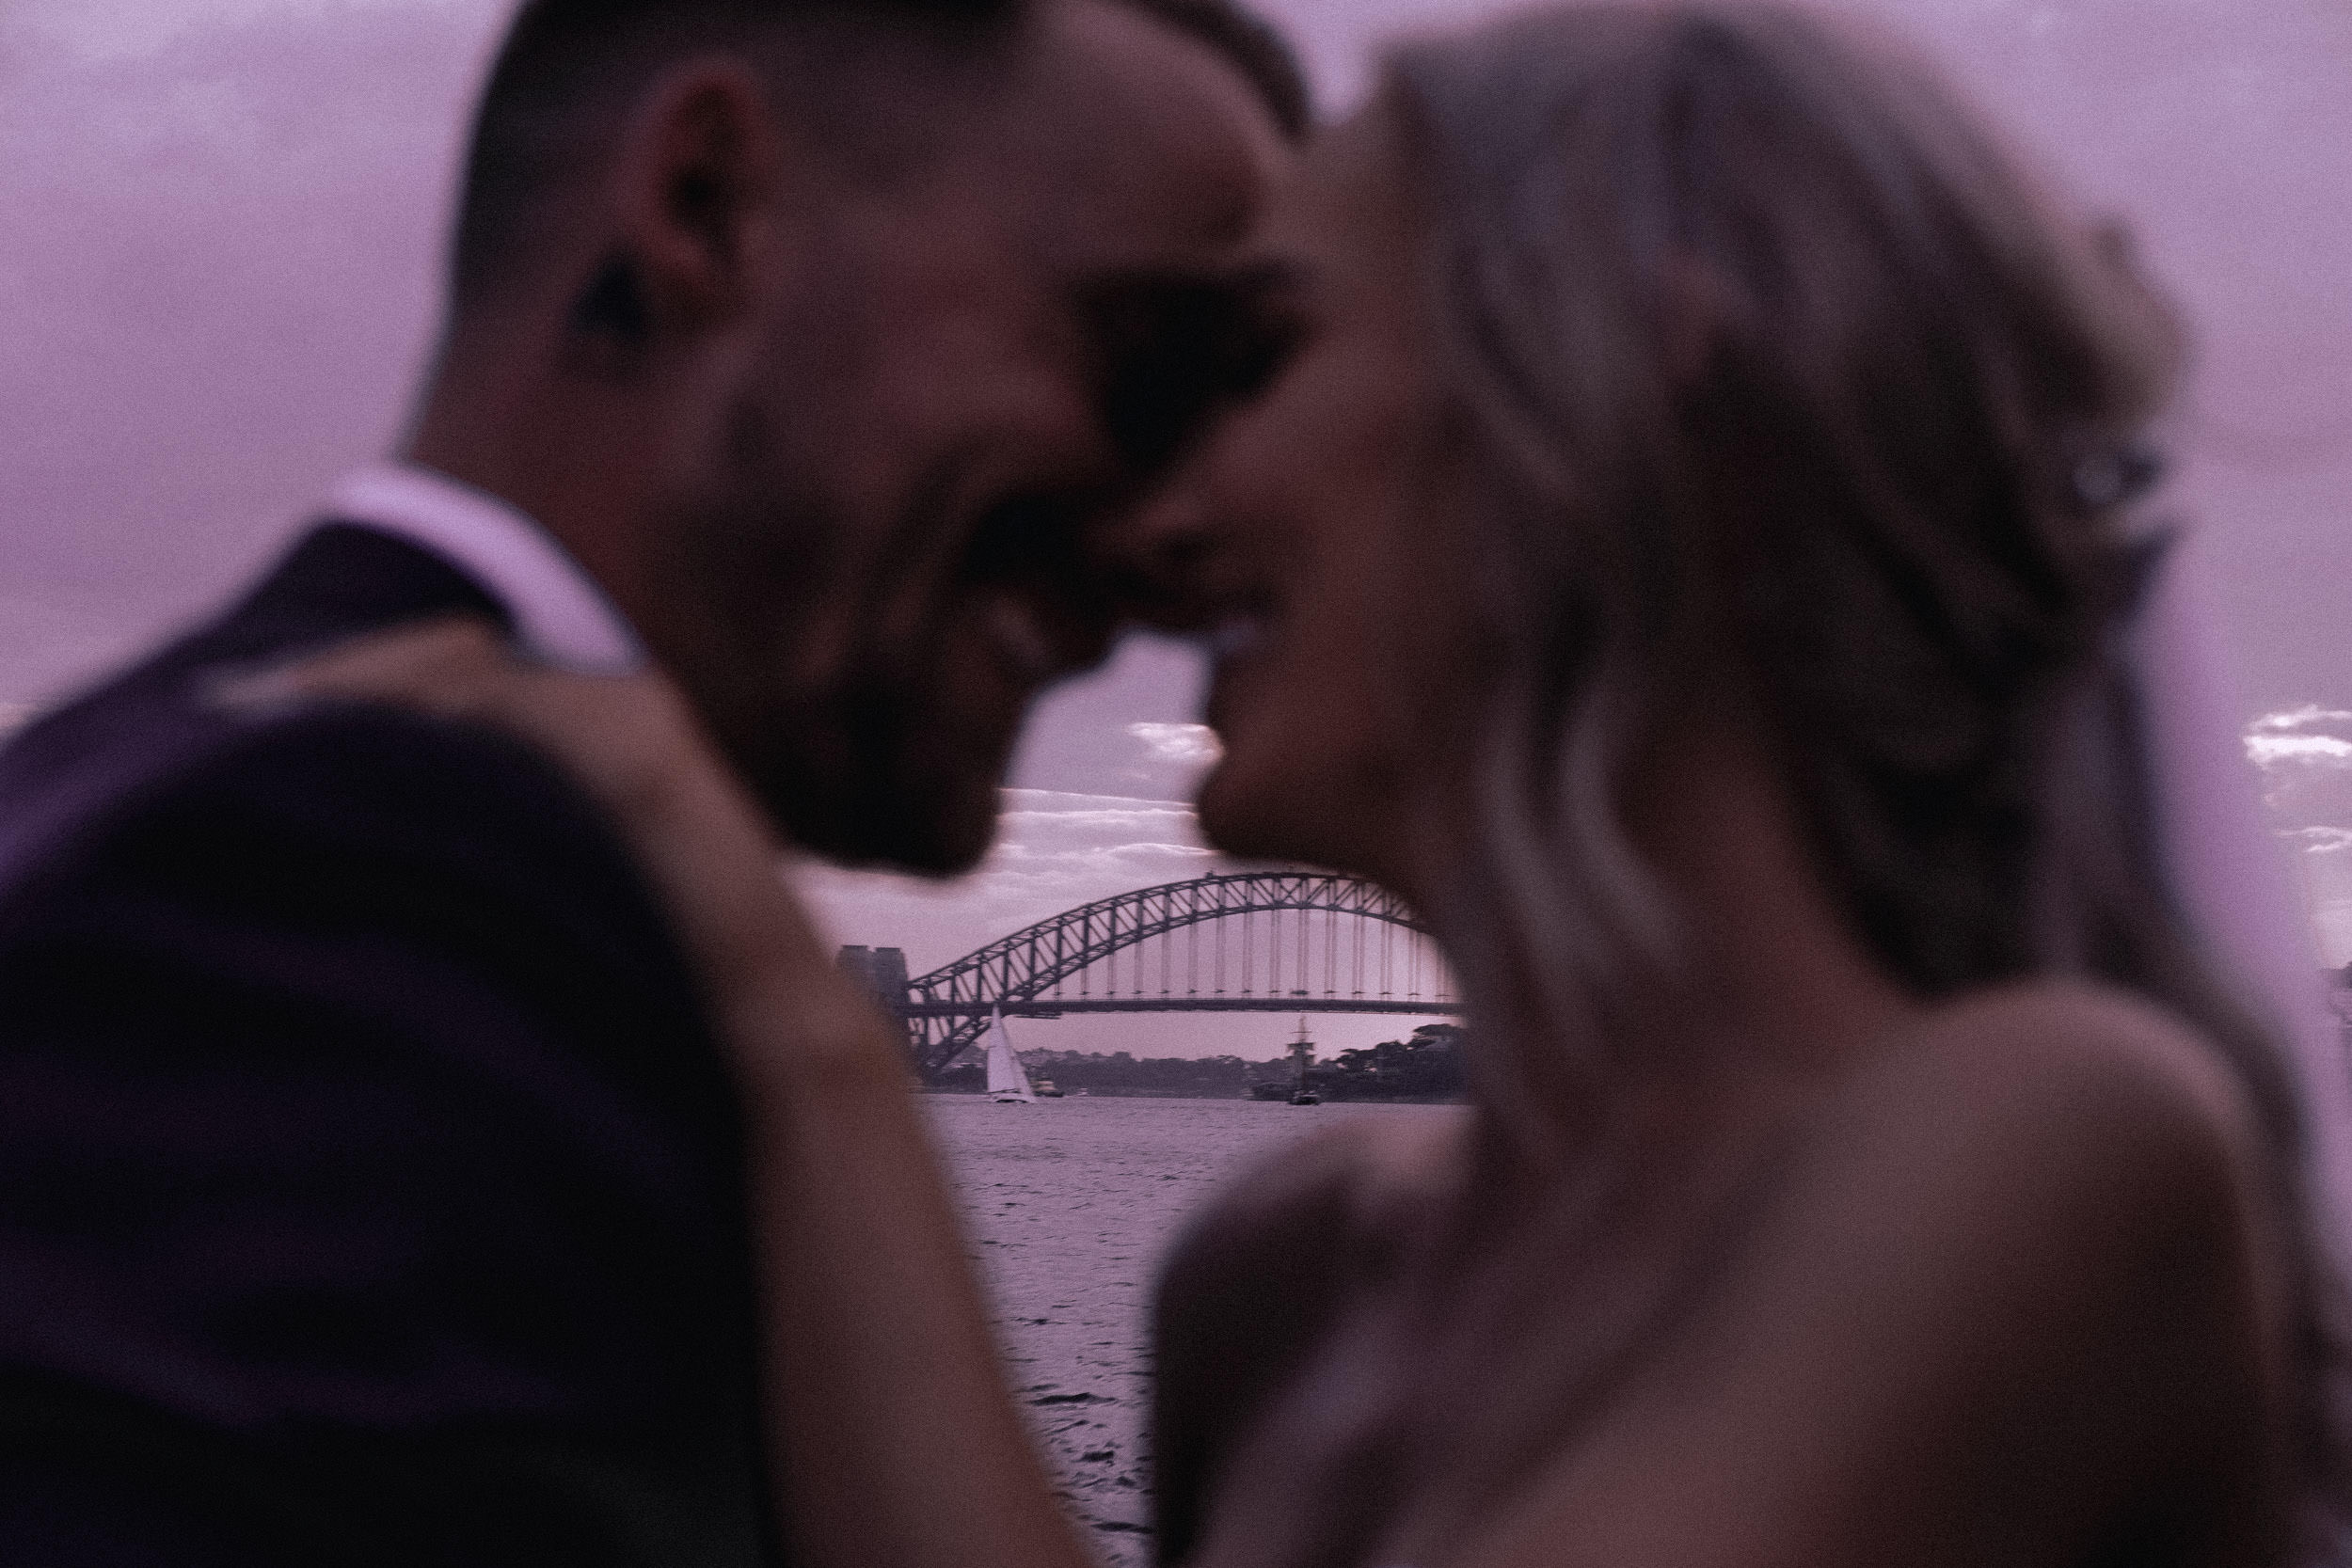 An intimate frame of a newly married bride and groom at Bradley's Head, on Sydney Harbour with the Sydney Harbour Bridge in the background, at sunset